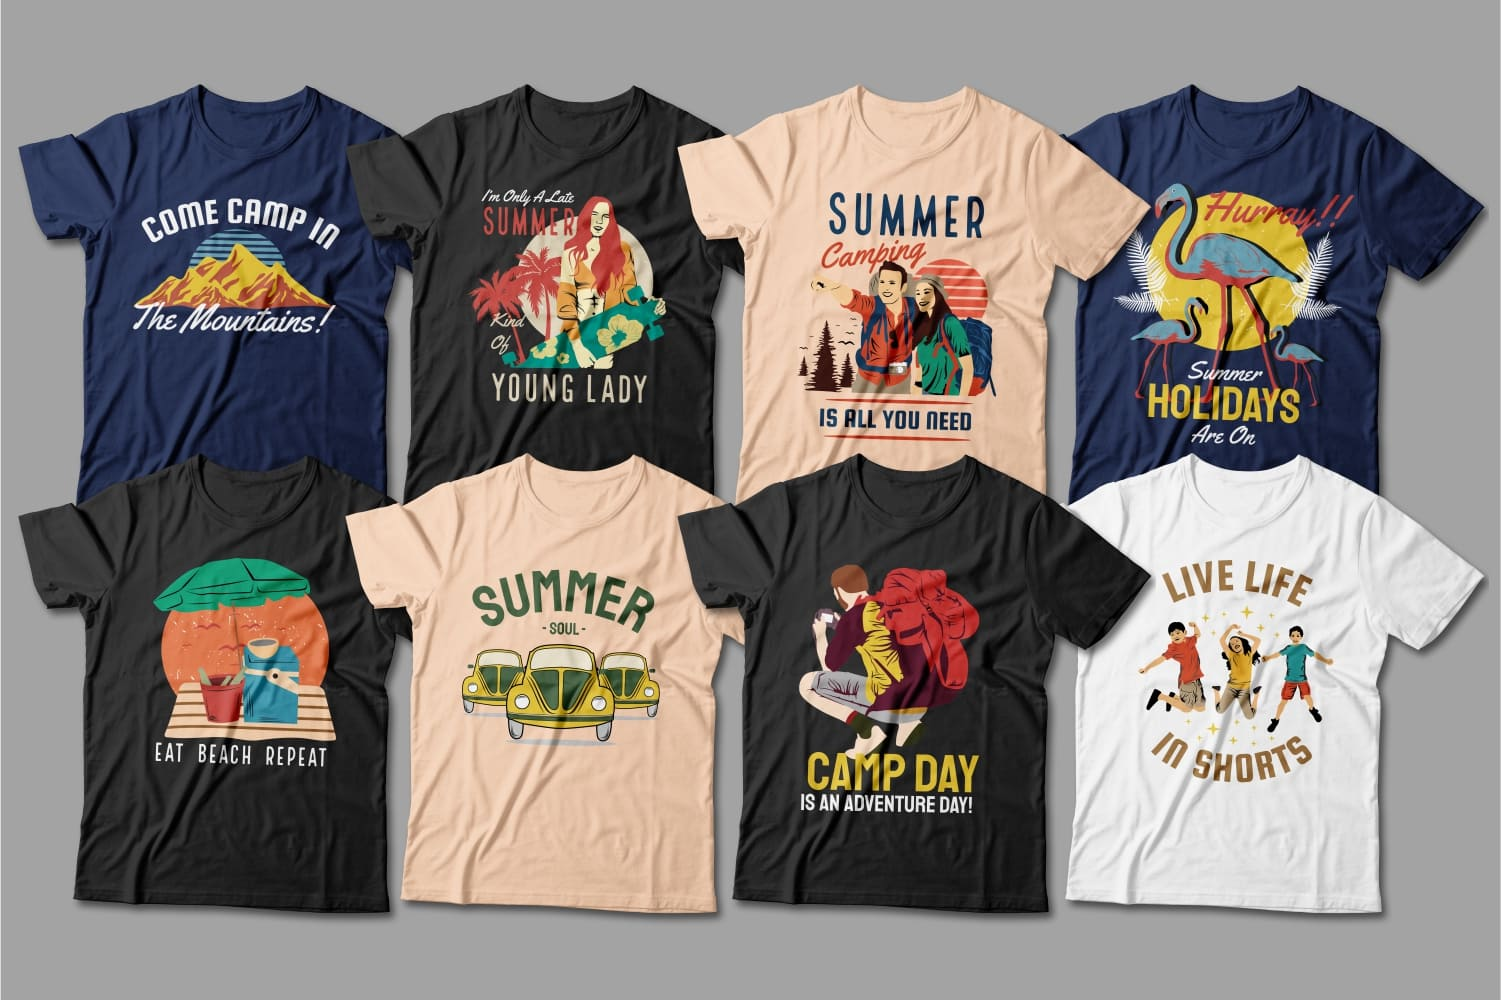 Summer T-shirts with cars, mountains and friends.